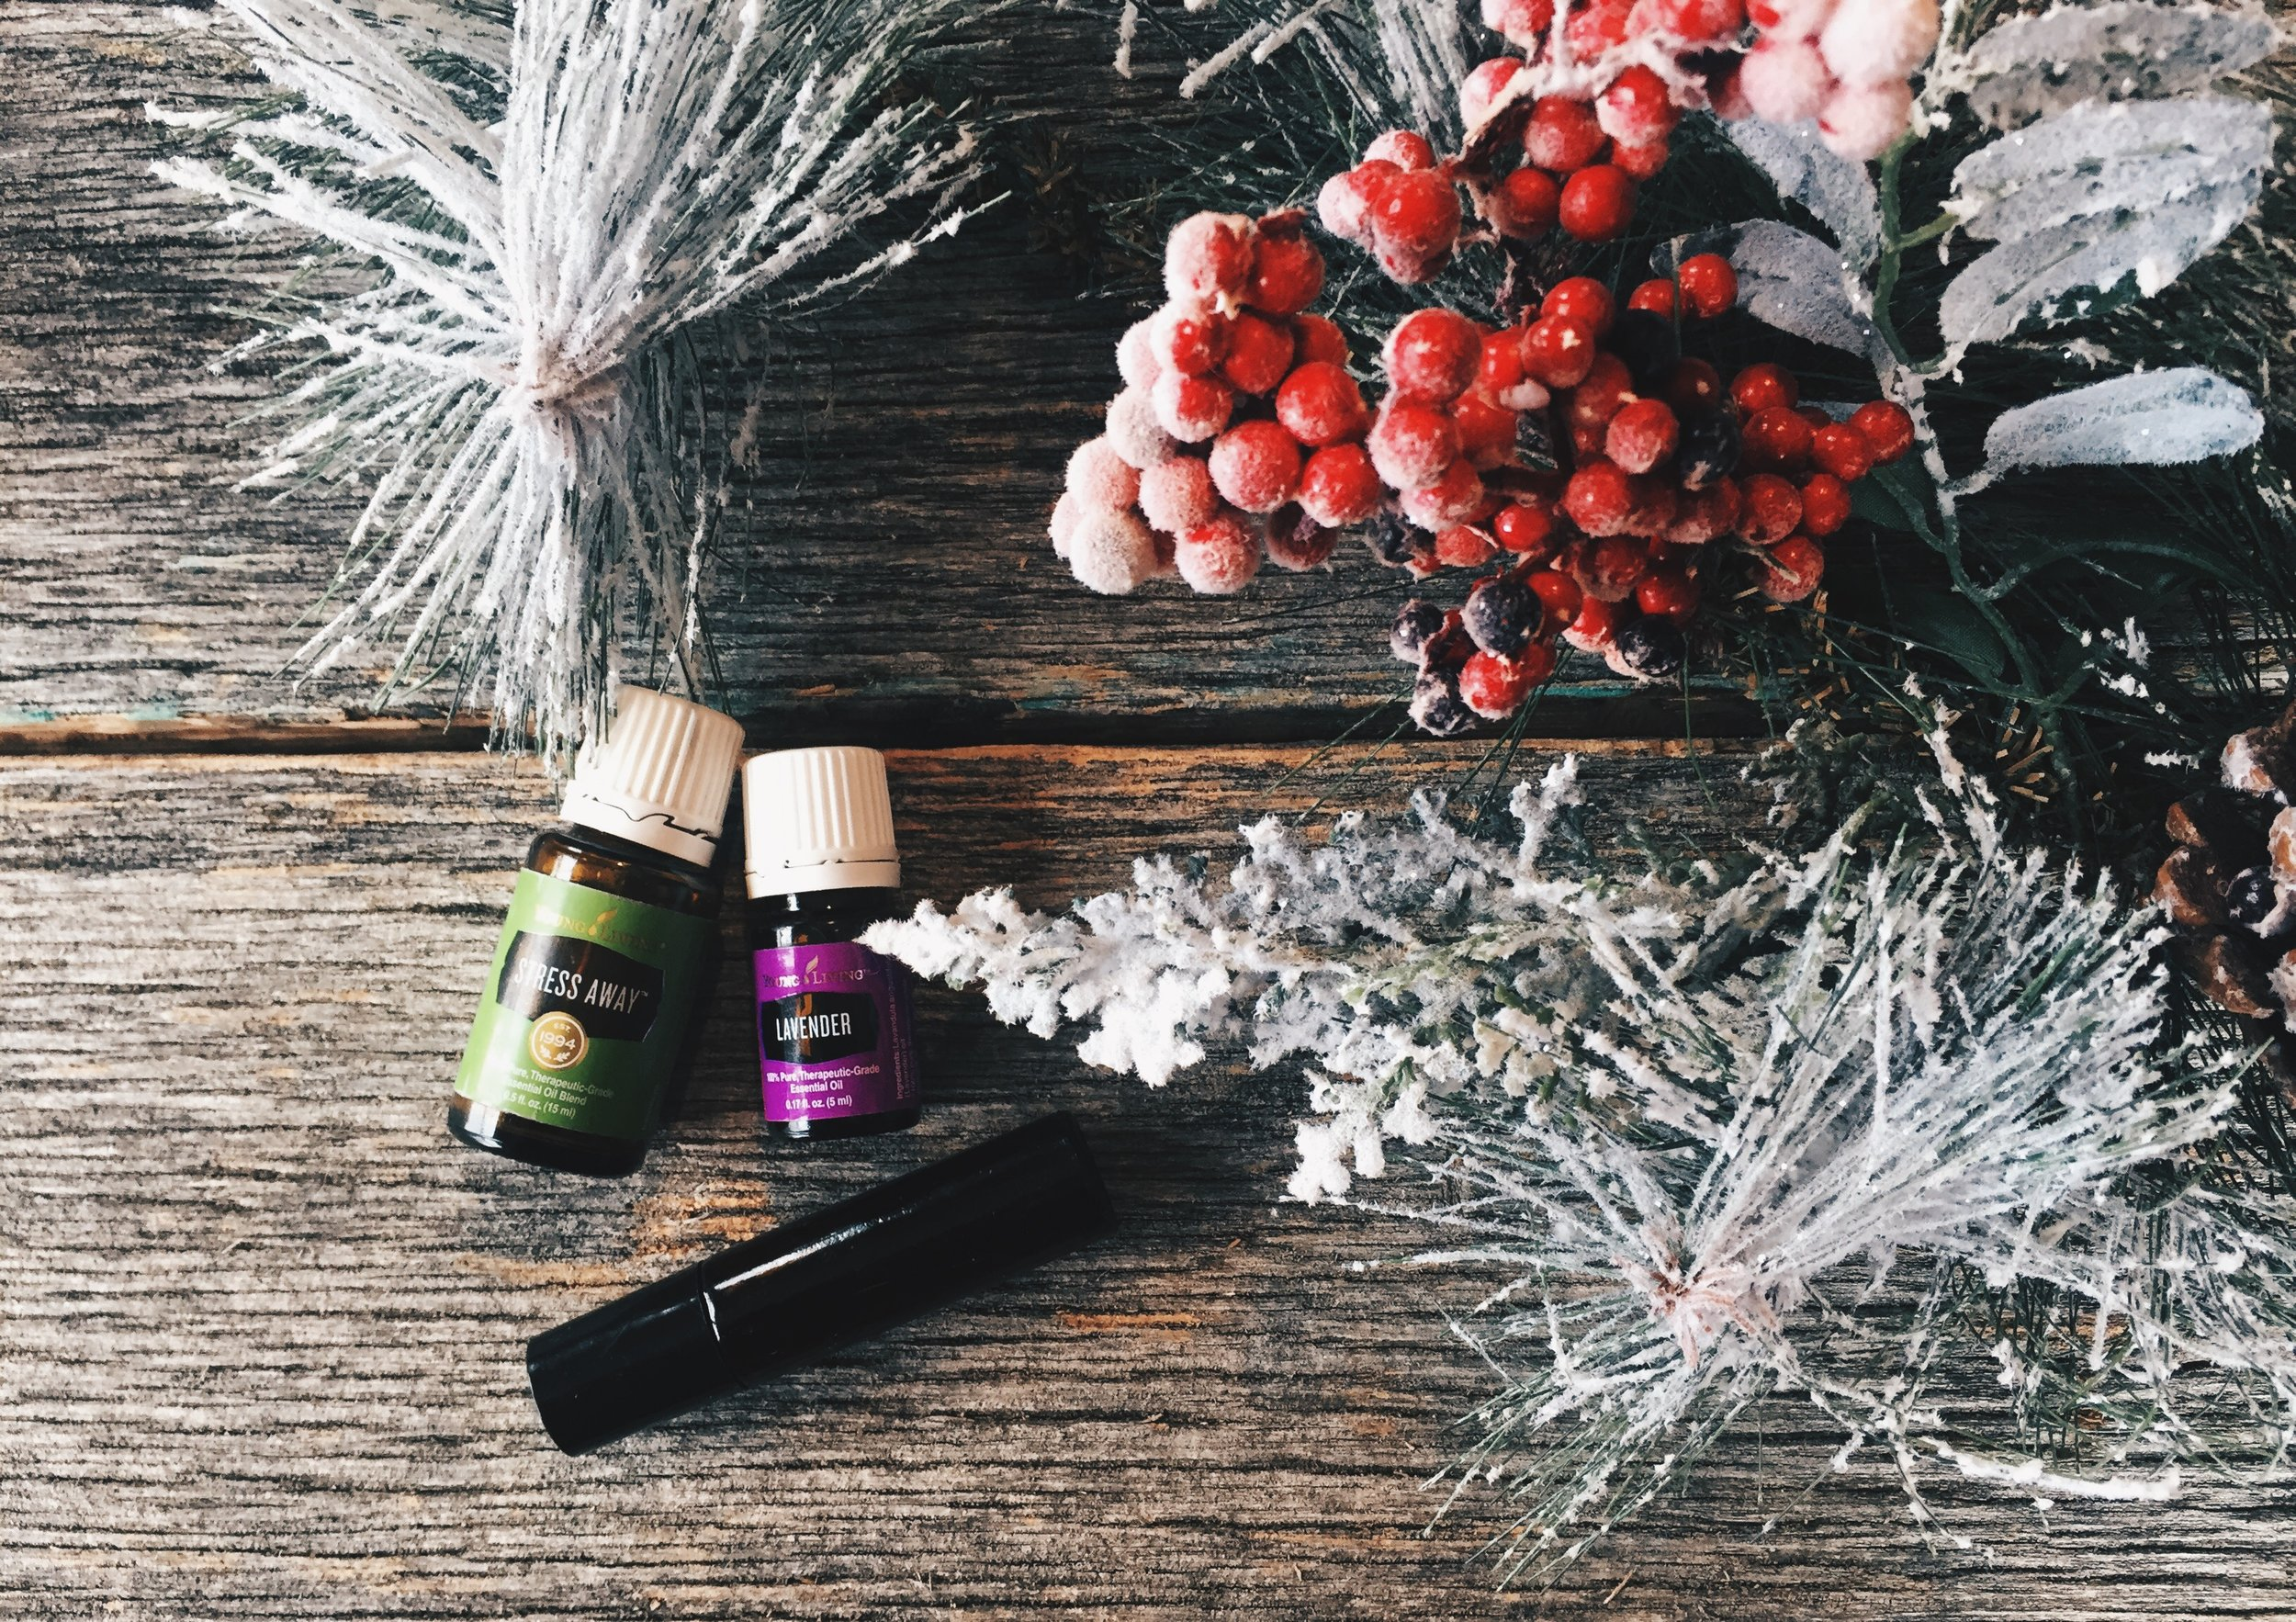 Young-Living-Essential-Oils-Stress-Away-Lavender-Roller-Coconut-Sleep-Green-The-Oily-Home-Companion.JPG